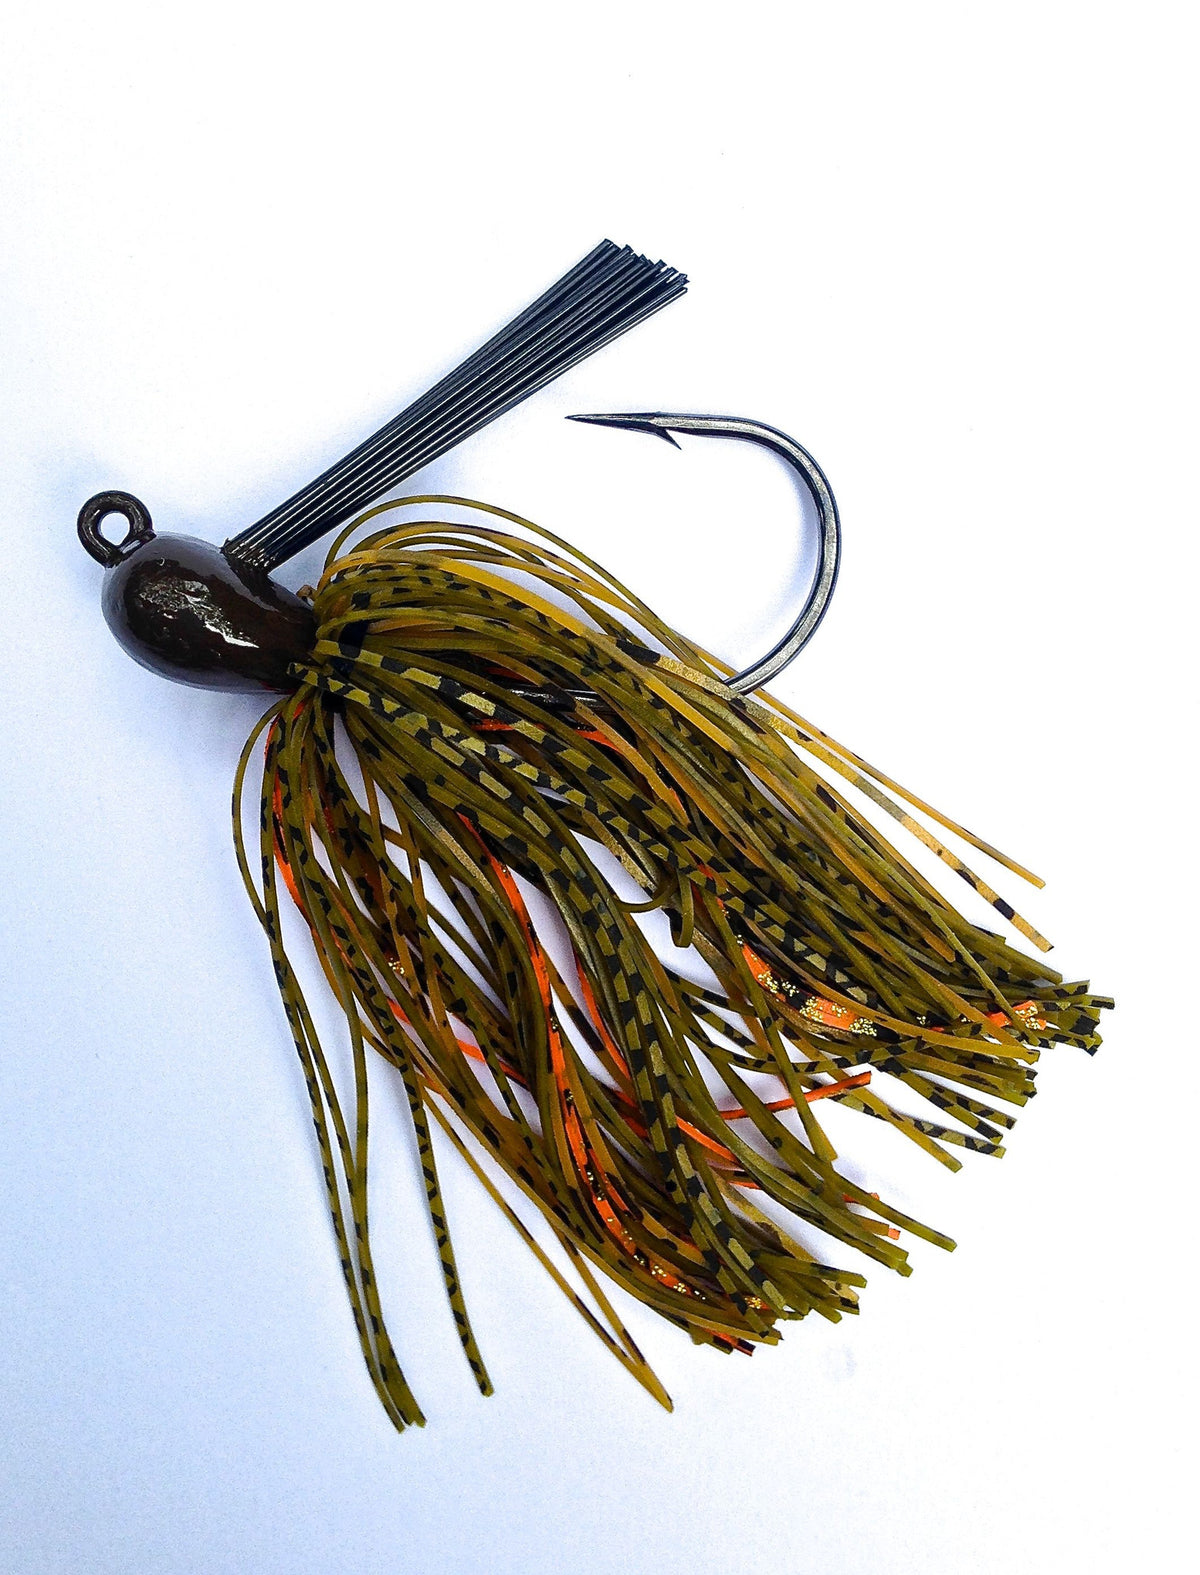 Shooter Lures Hand Tied Jigs - Angler's Headquarters